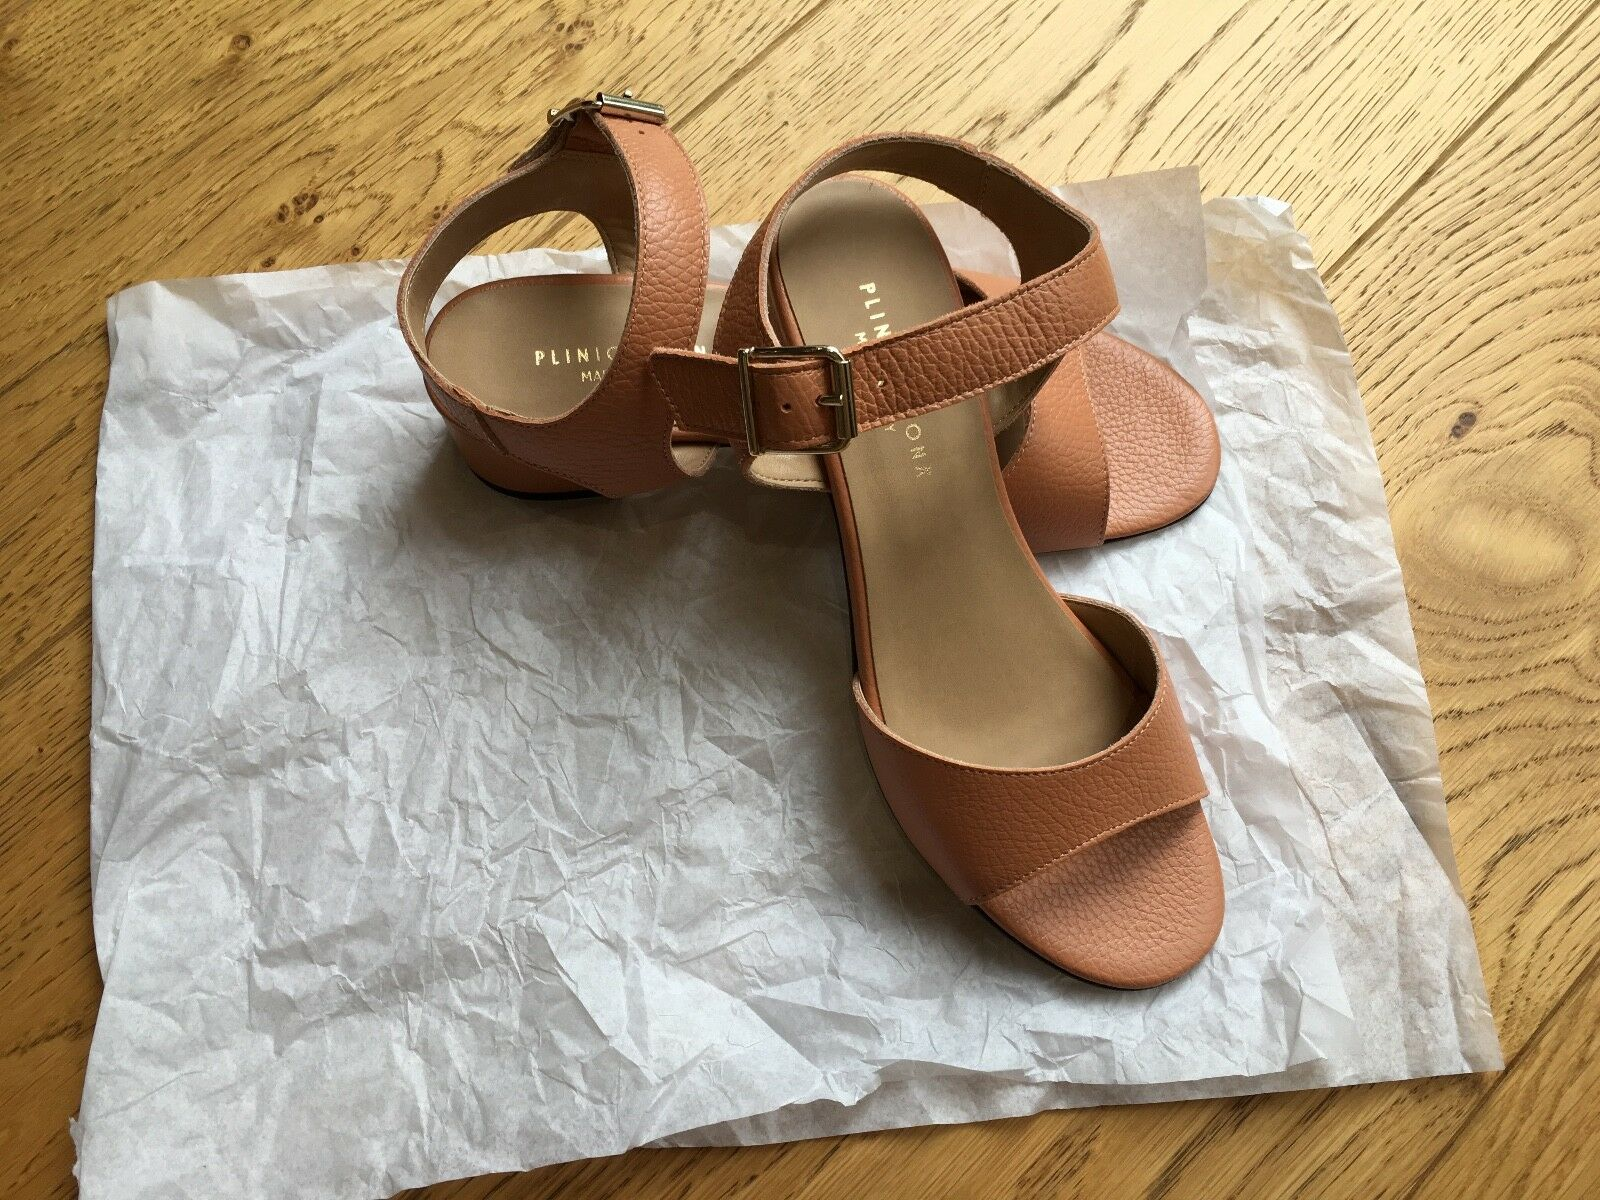 PLINIO VISONA Italian leather sandals size 37 (4 UK) -NEW